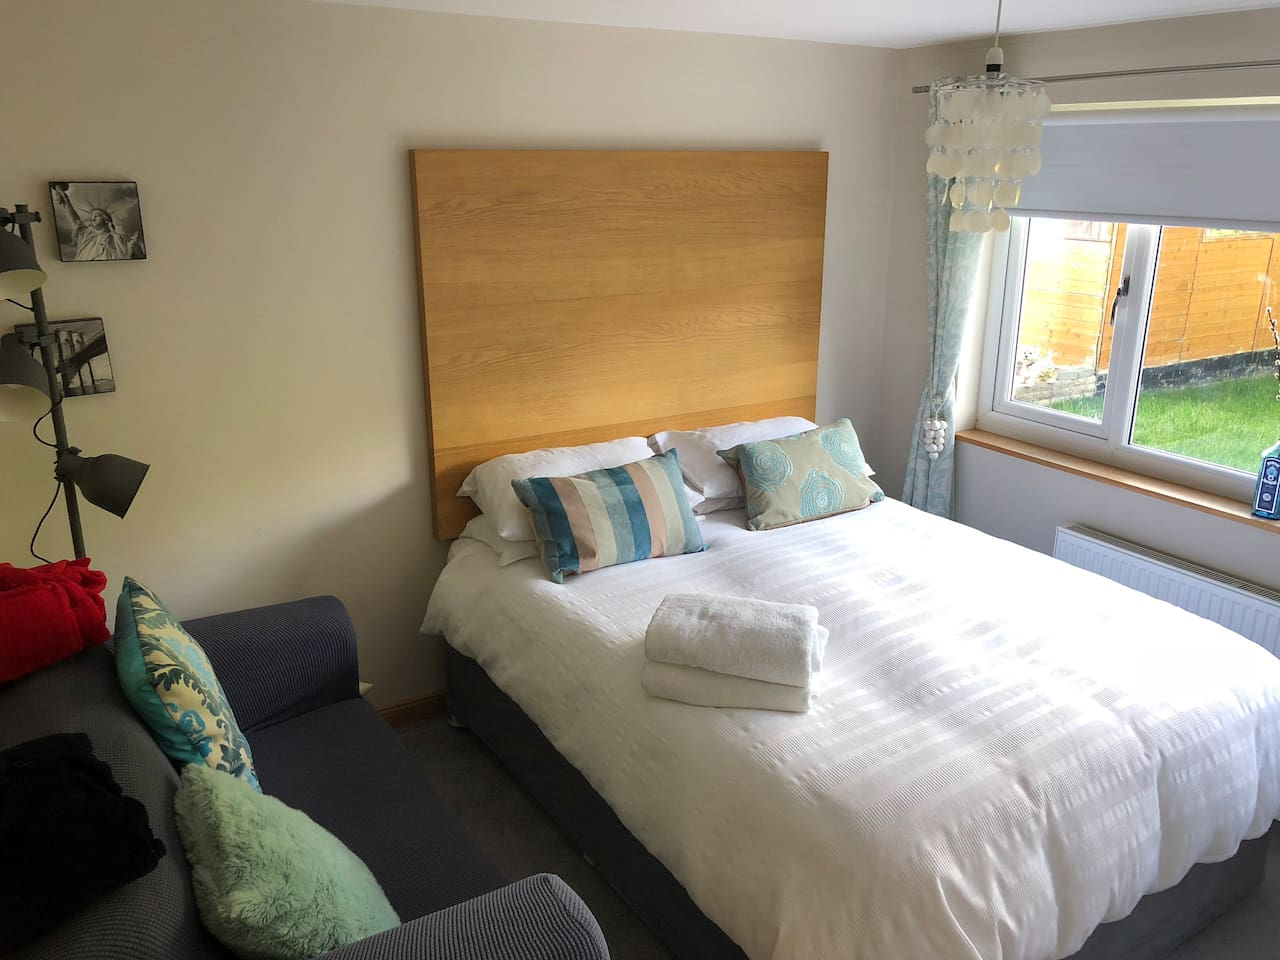 Comfy  Bright and Airy Double bedroom  with gas central heating  Fab  King Sized Bed - Freeview Tv Sofa and Table for laptop/eating etc  - Door has lock for your privacy  - In summer we dont have heating on but there is a portable heater in kitchen